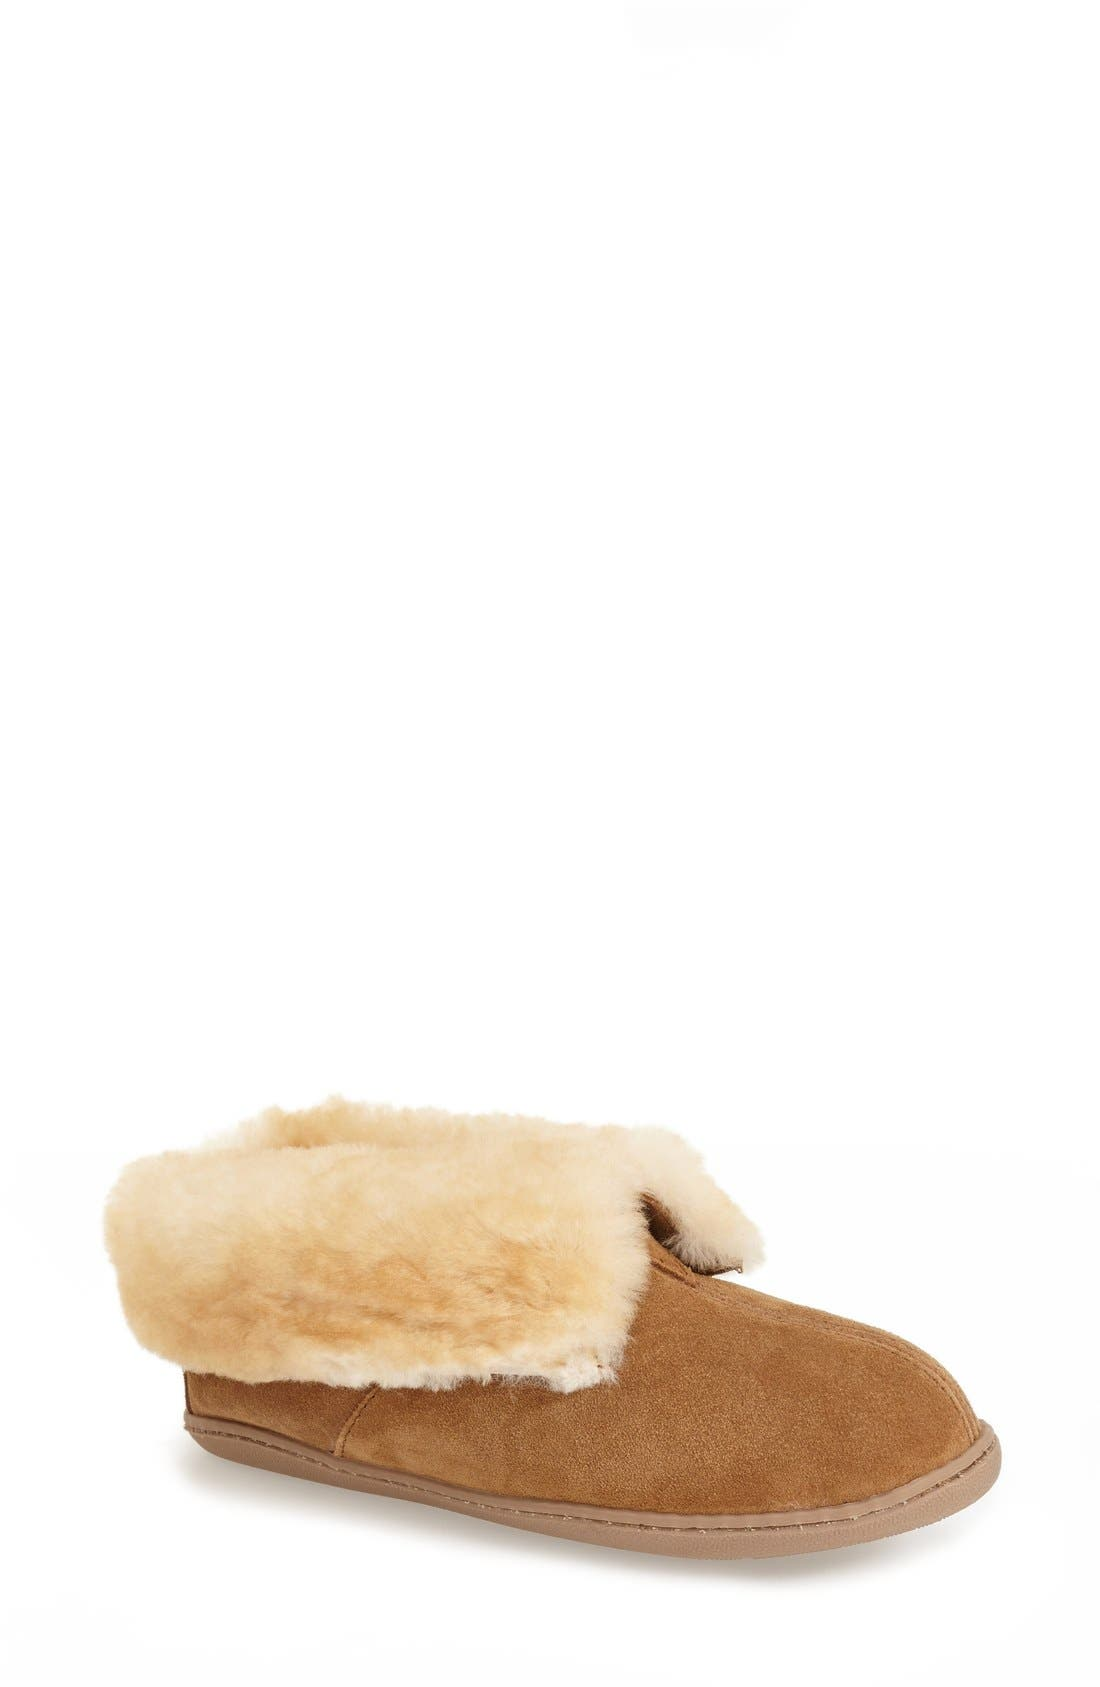 Sheepskin Slipper Bootie,                             Main thumbnail 1, color,                             Tan Suede